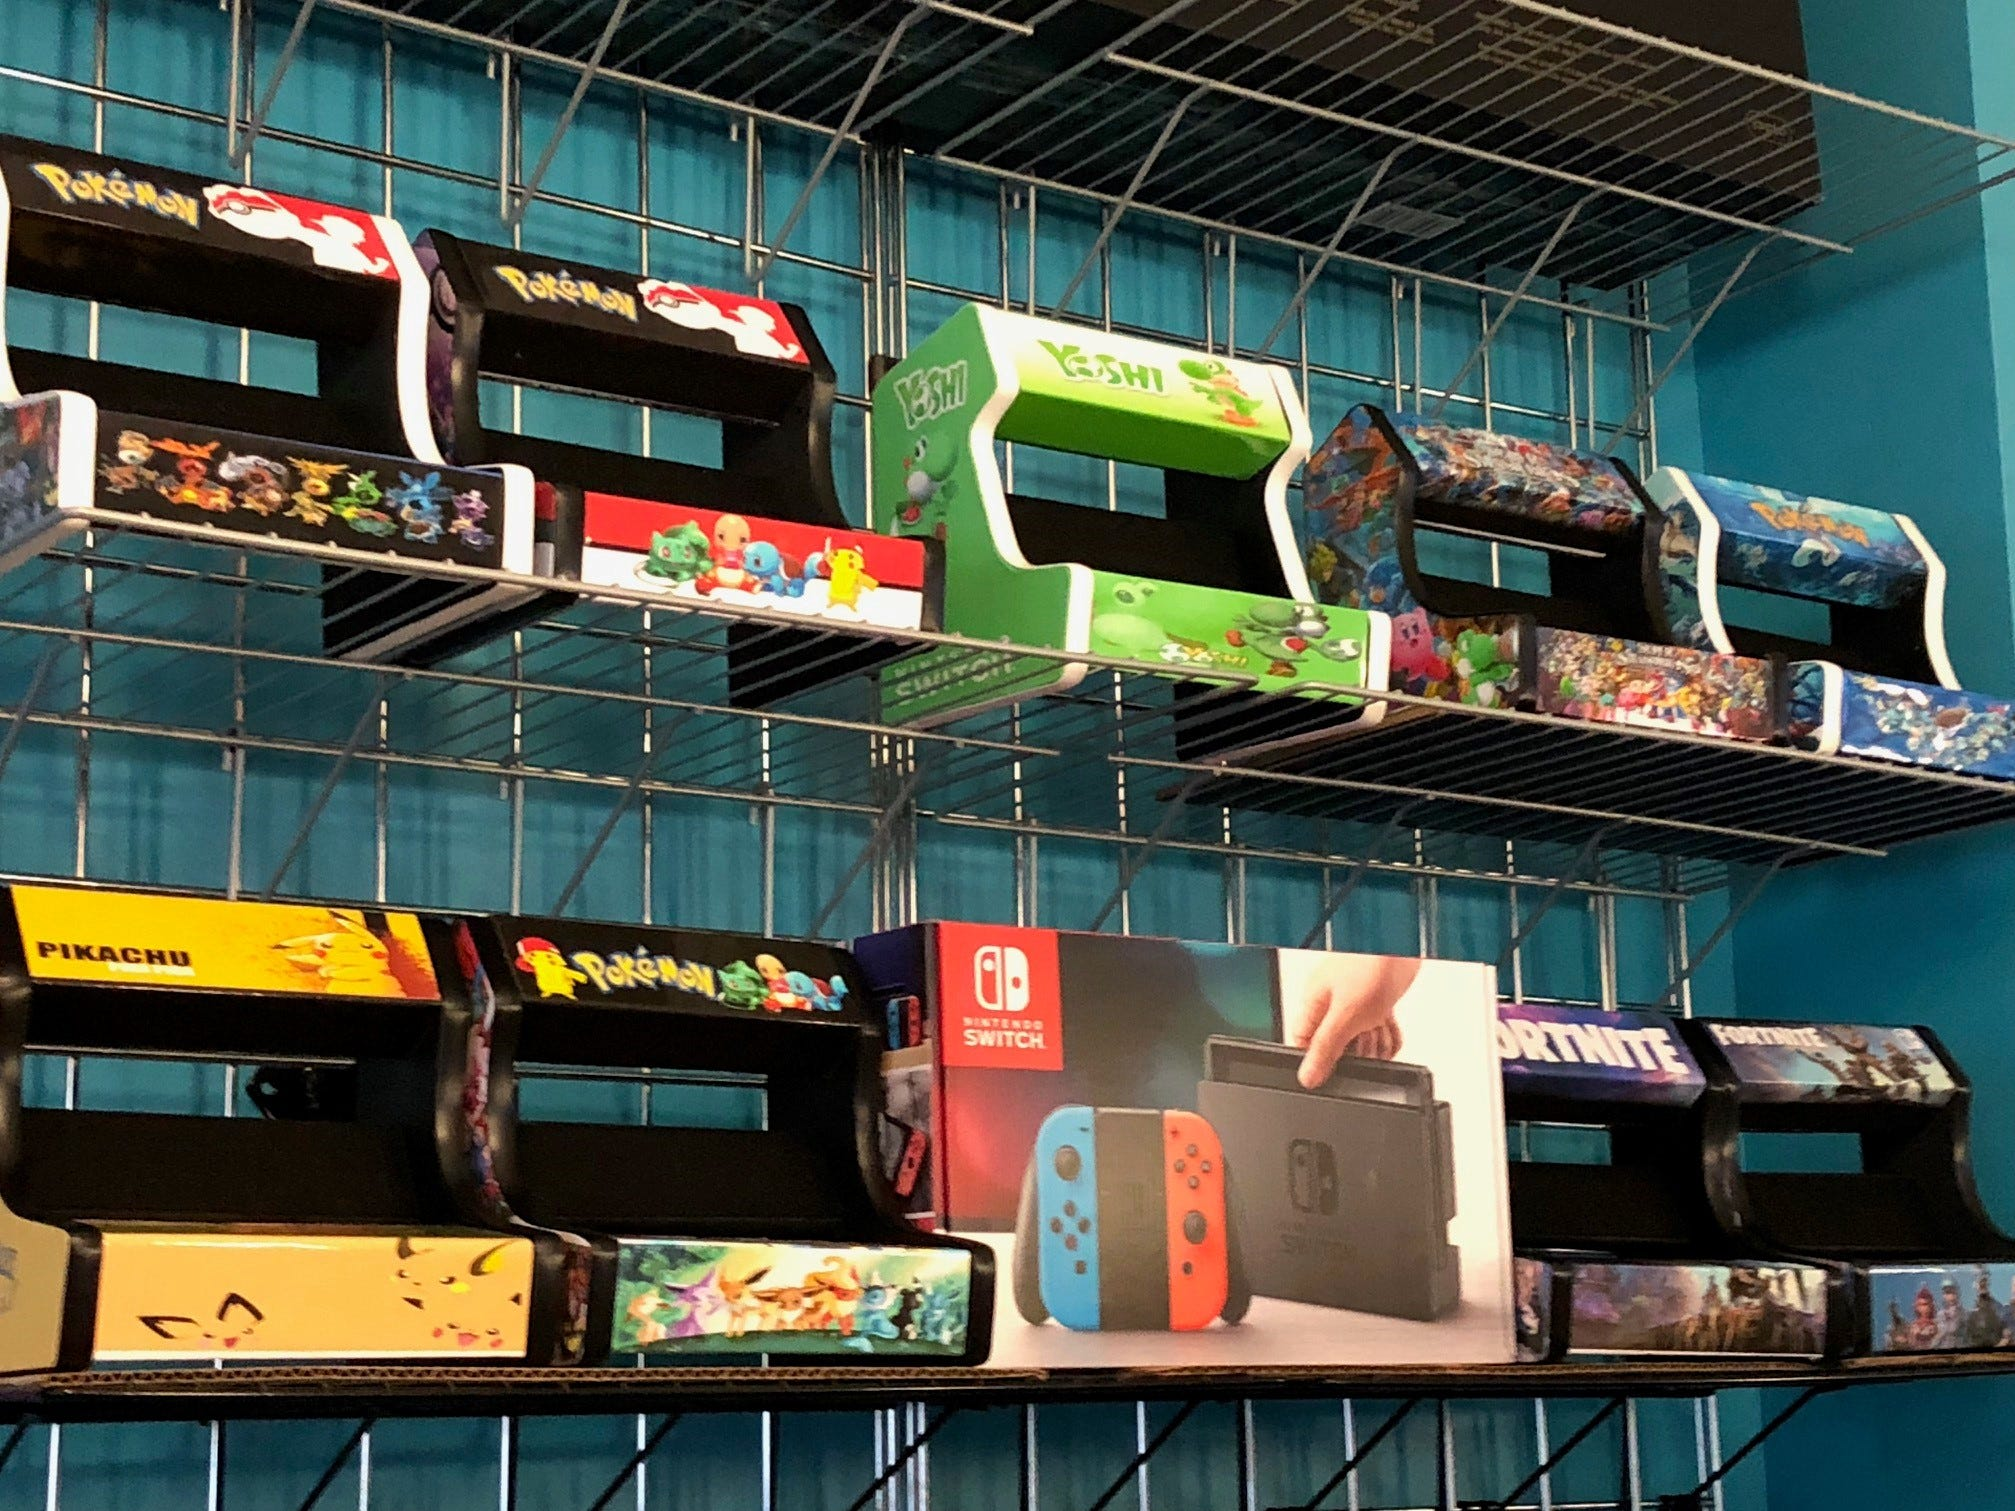 Custom-made holders for Nintendo Switch boxes are sold at Ninja's Little Toy House.